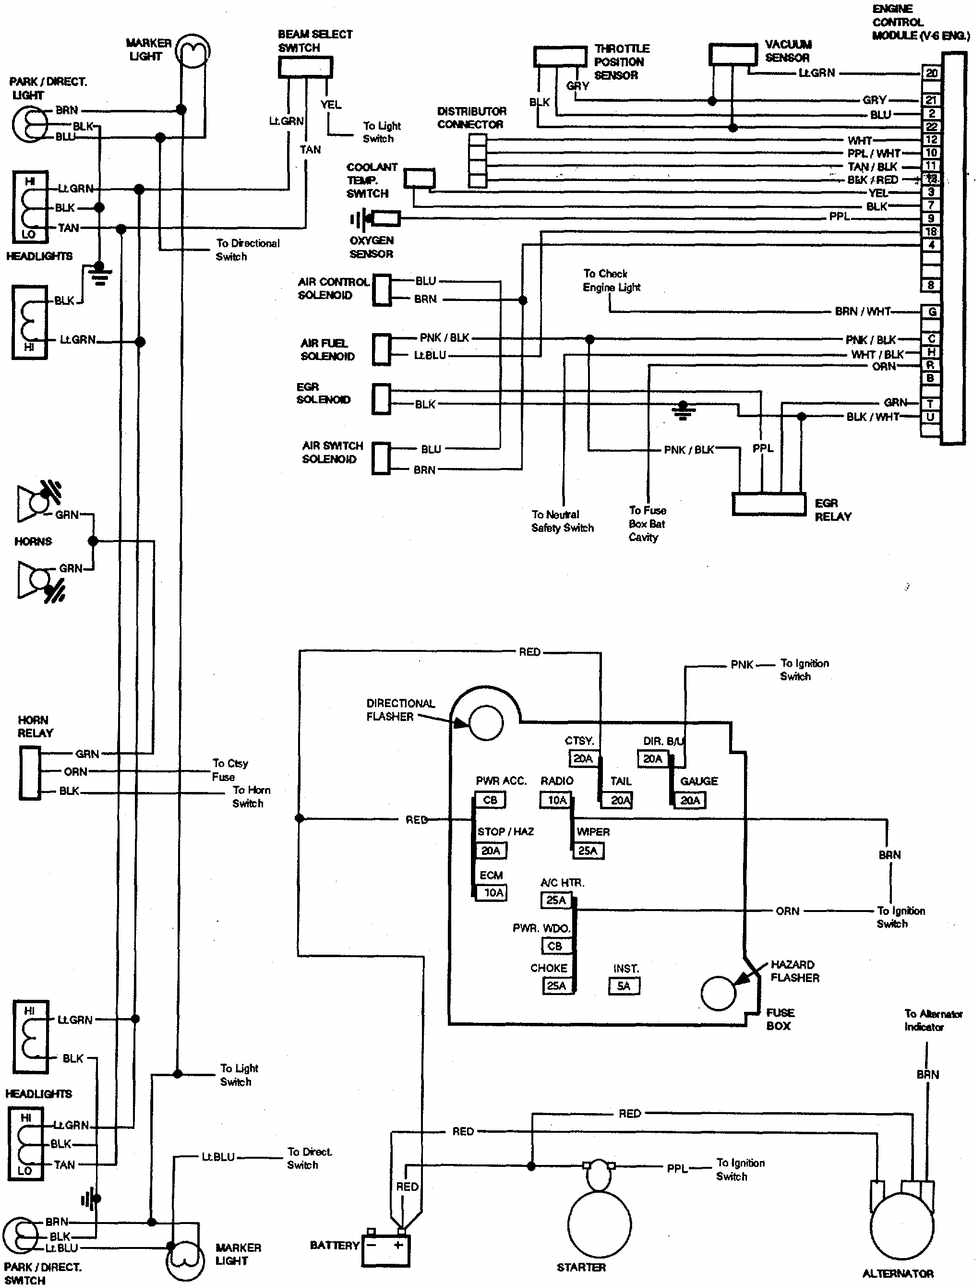 1994 s 10 wiring schematics pdf wiring diagram news 1997 s10 engine diagram chevy s wiring diagram discover your wiring rh bharc tripa co mercedes wiring schematic pdf mercedes wiring schematic pdf publicscrutiny Images